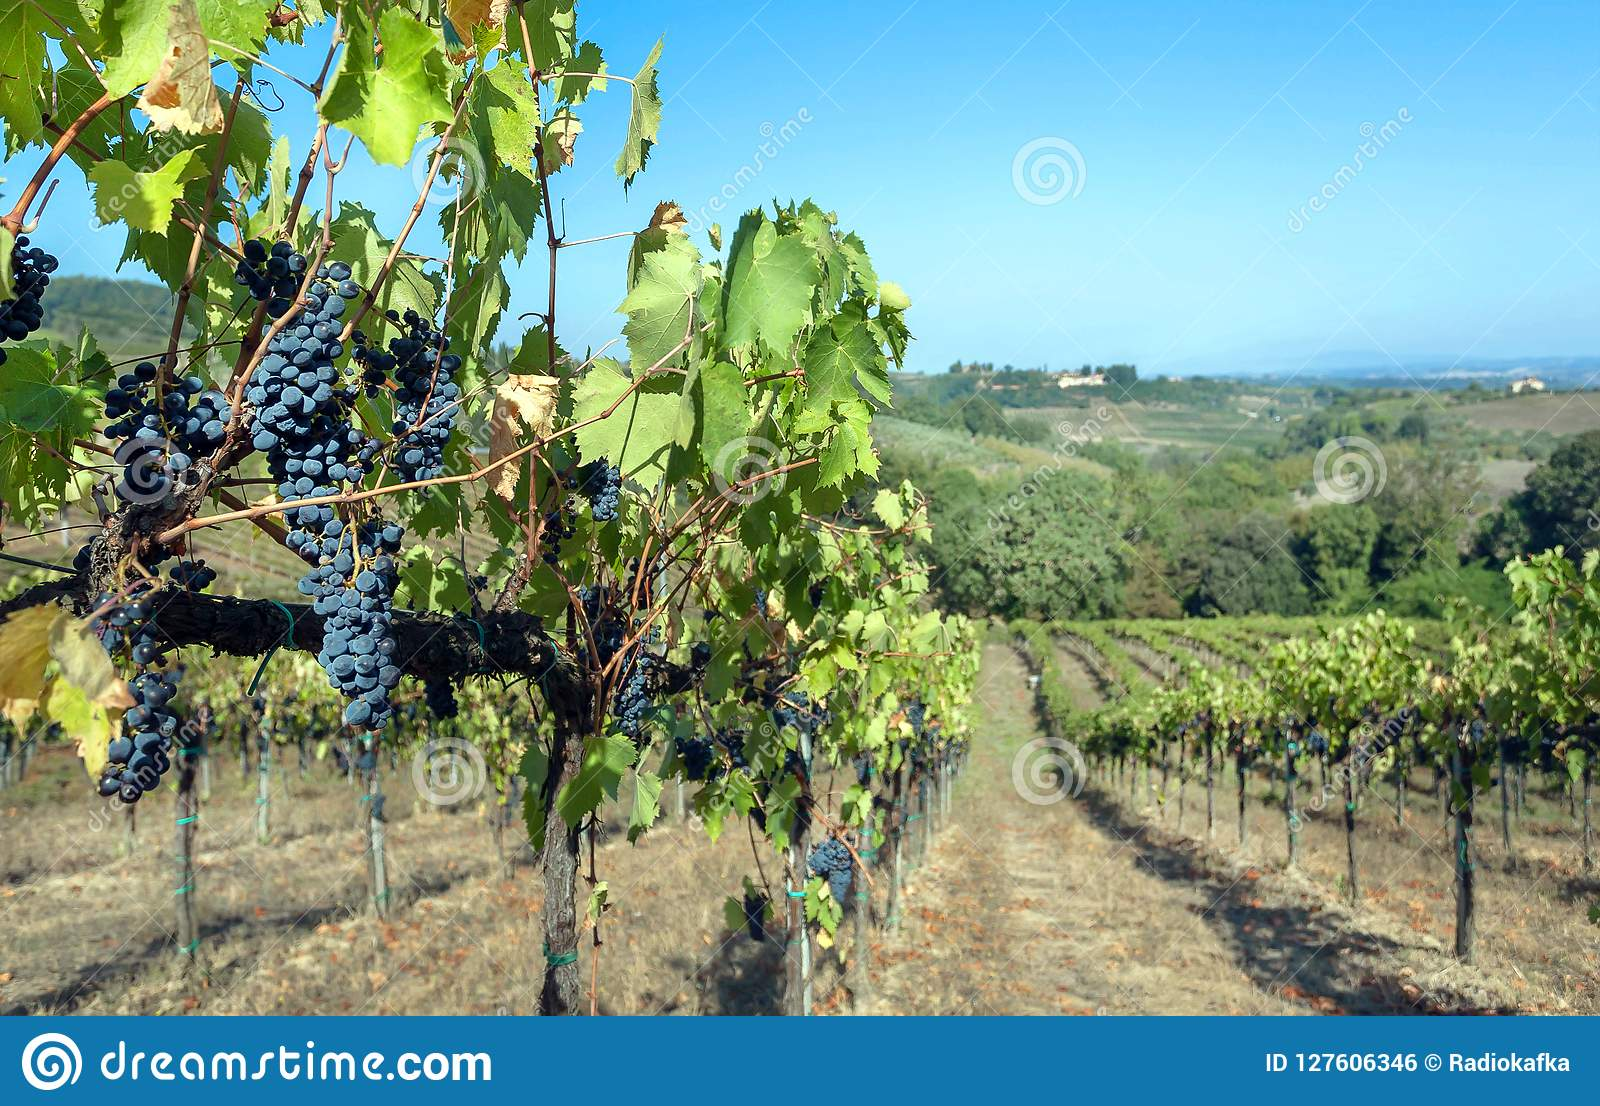 Blue grapevine in wineyard. Colorful vineyard landscape in Italy. Vineyard rows at Tuscany in autumn harvest time